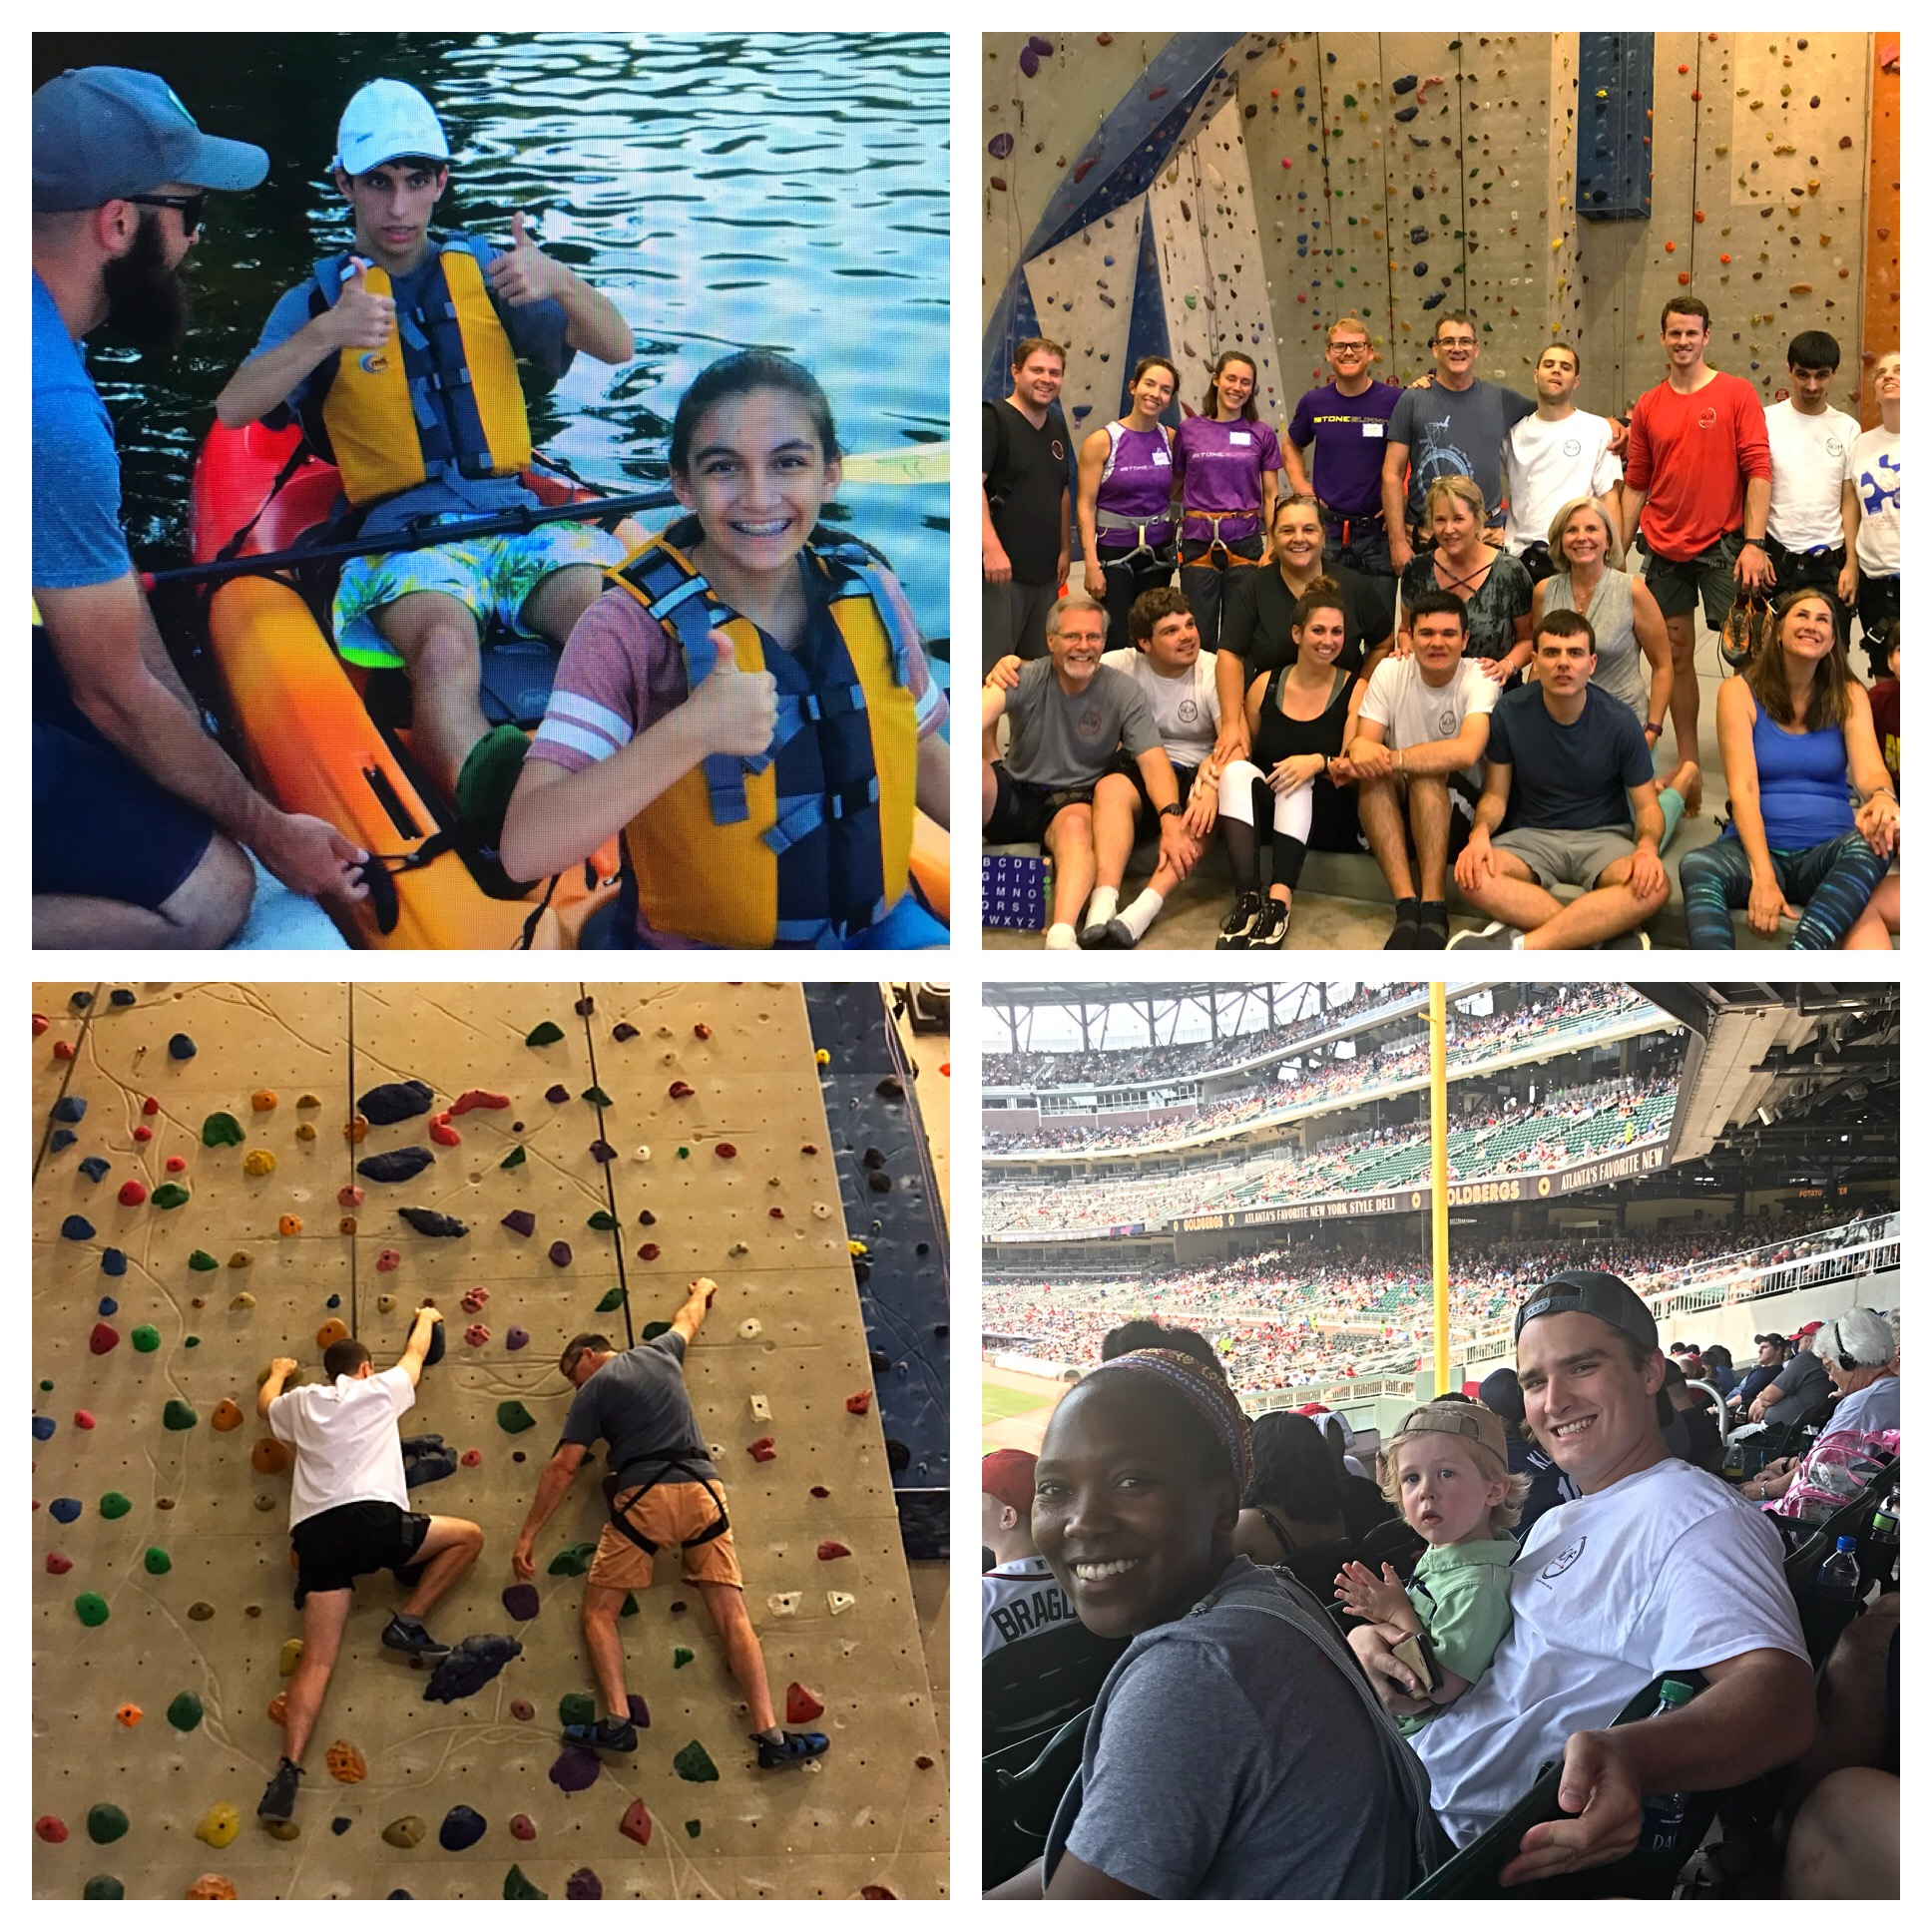 Autism Inclusive Social Outings - Sensory friendly environments and support for those with autism to experience activities which are often taken for granted such as kayaking, hiking, rock climbing, volunteerism, movies, and attending sporting & cultural events. Participation is geared for all friends and family as well.